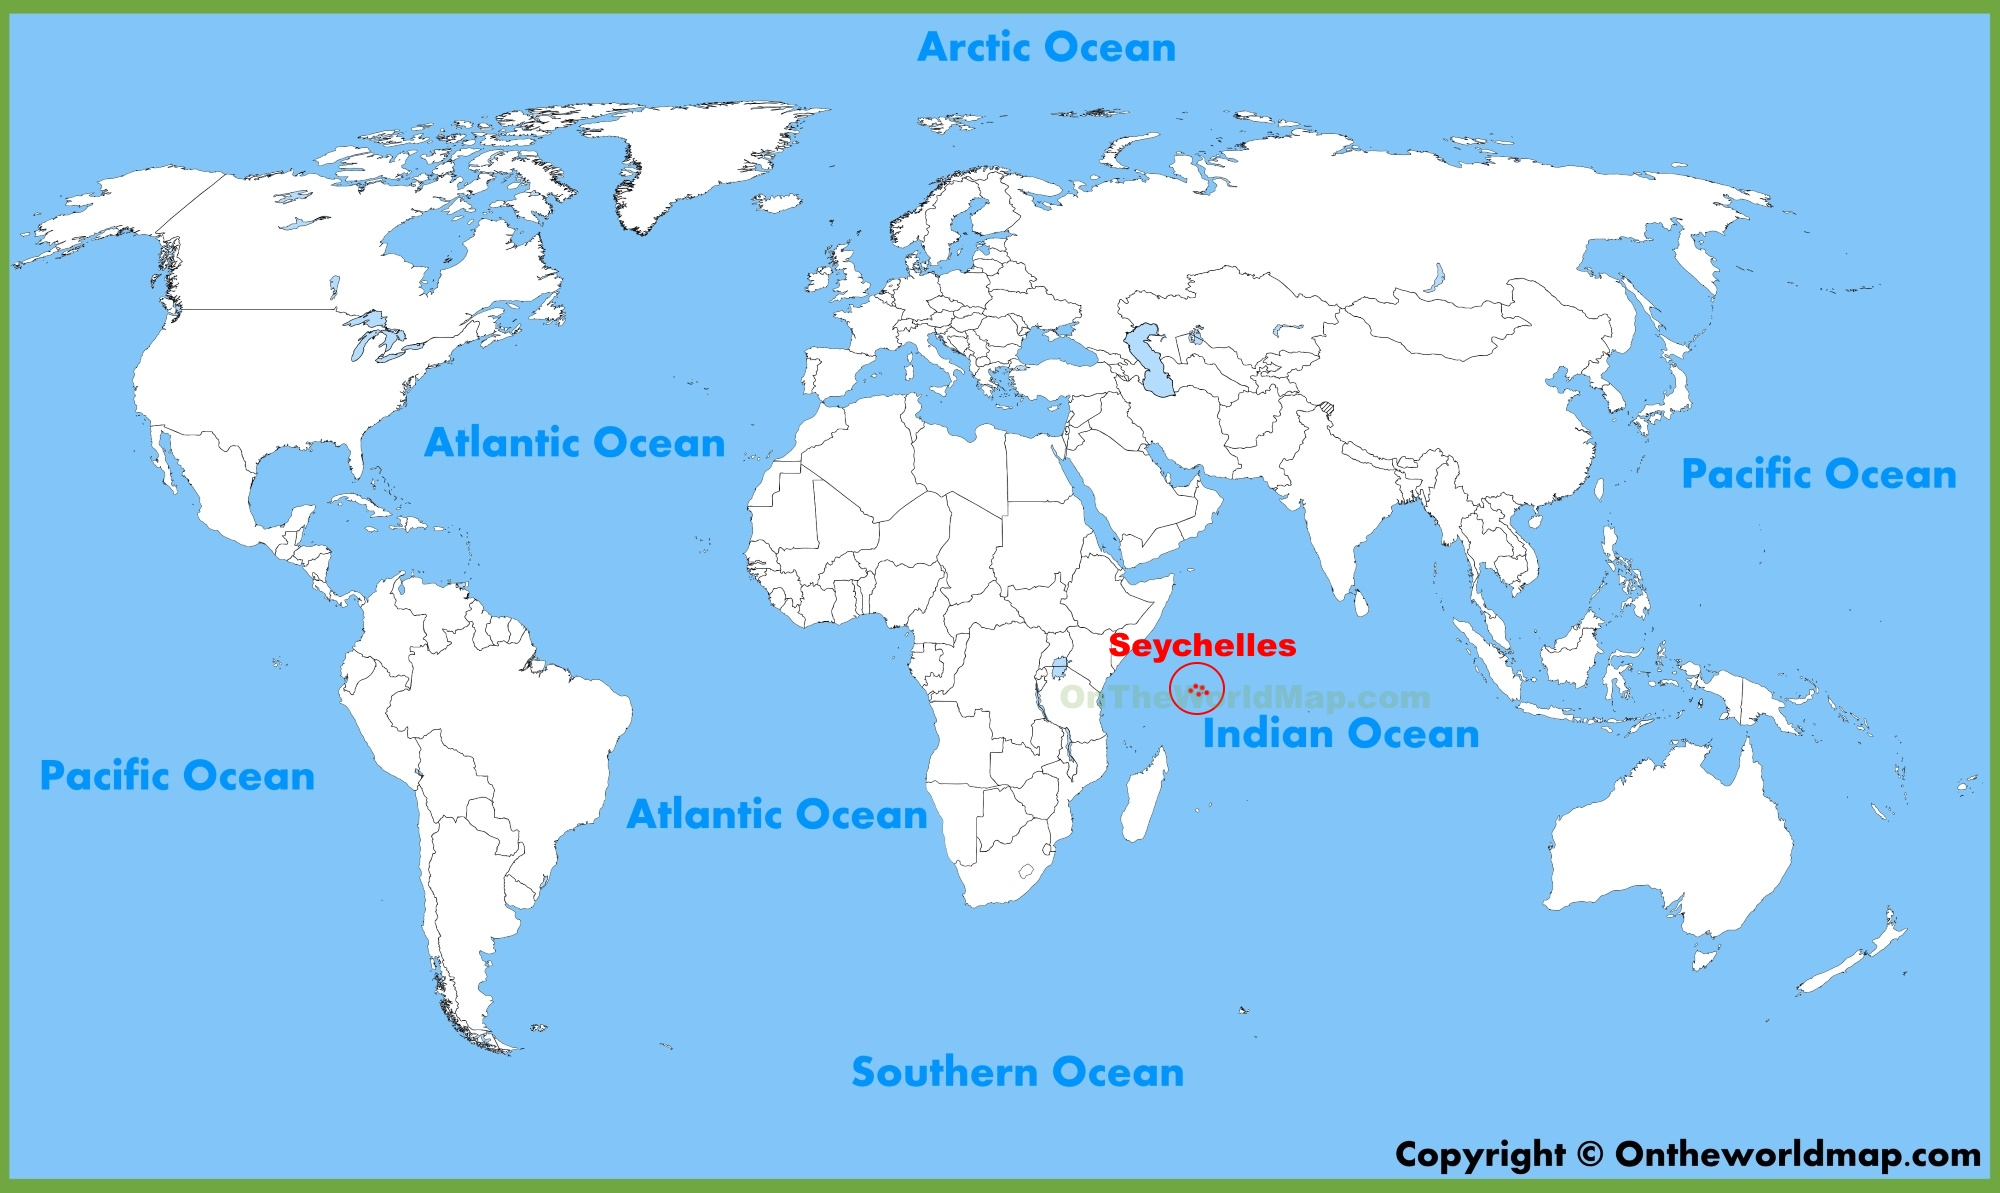 Seychelles location on the World Map